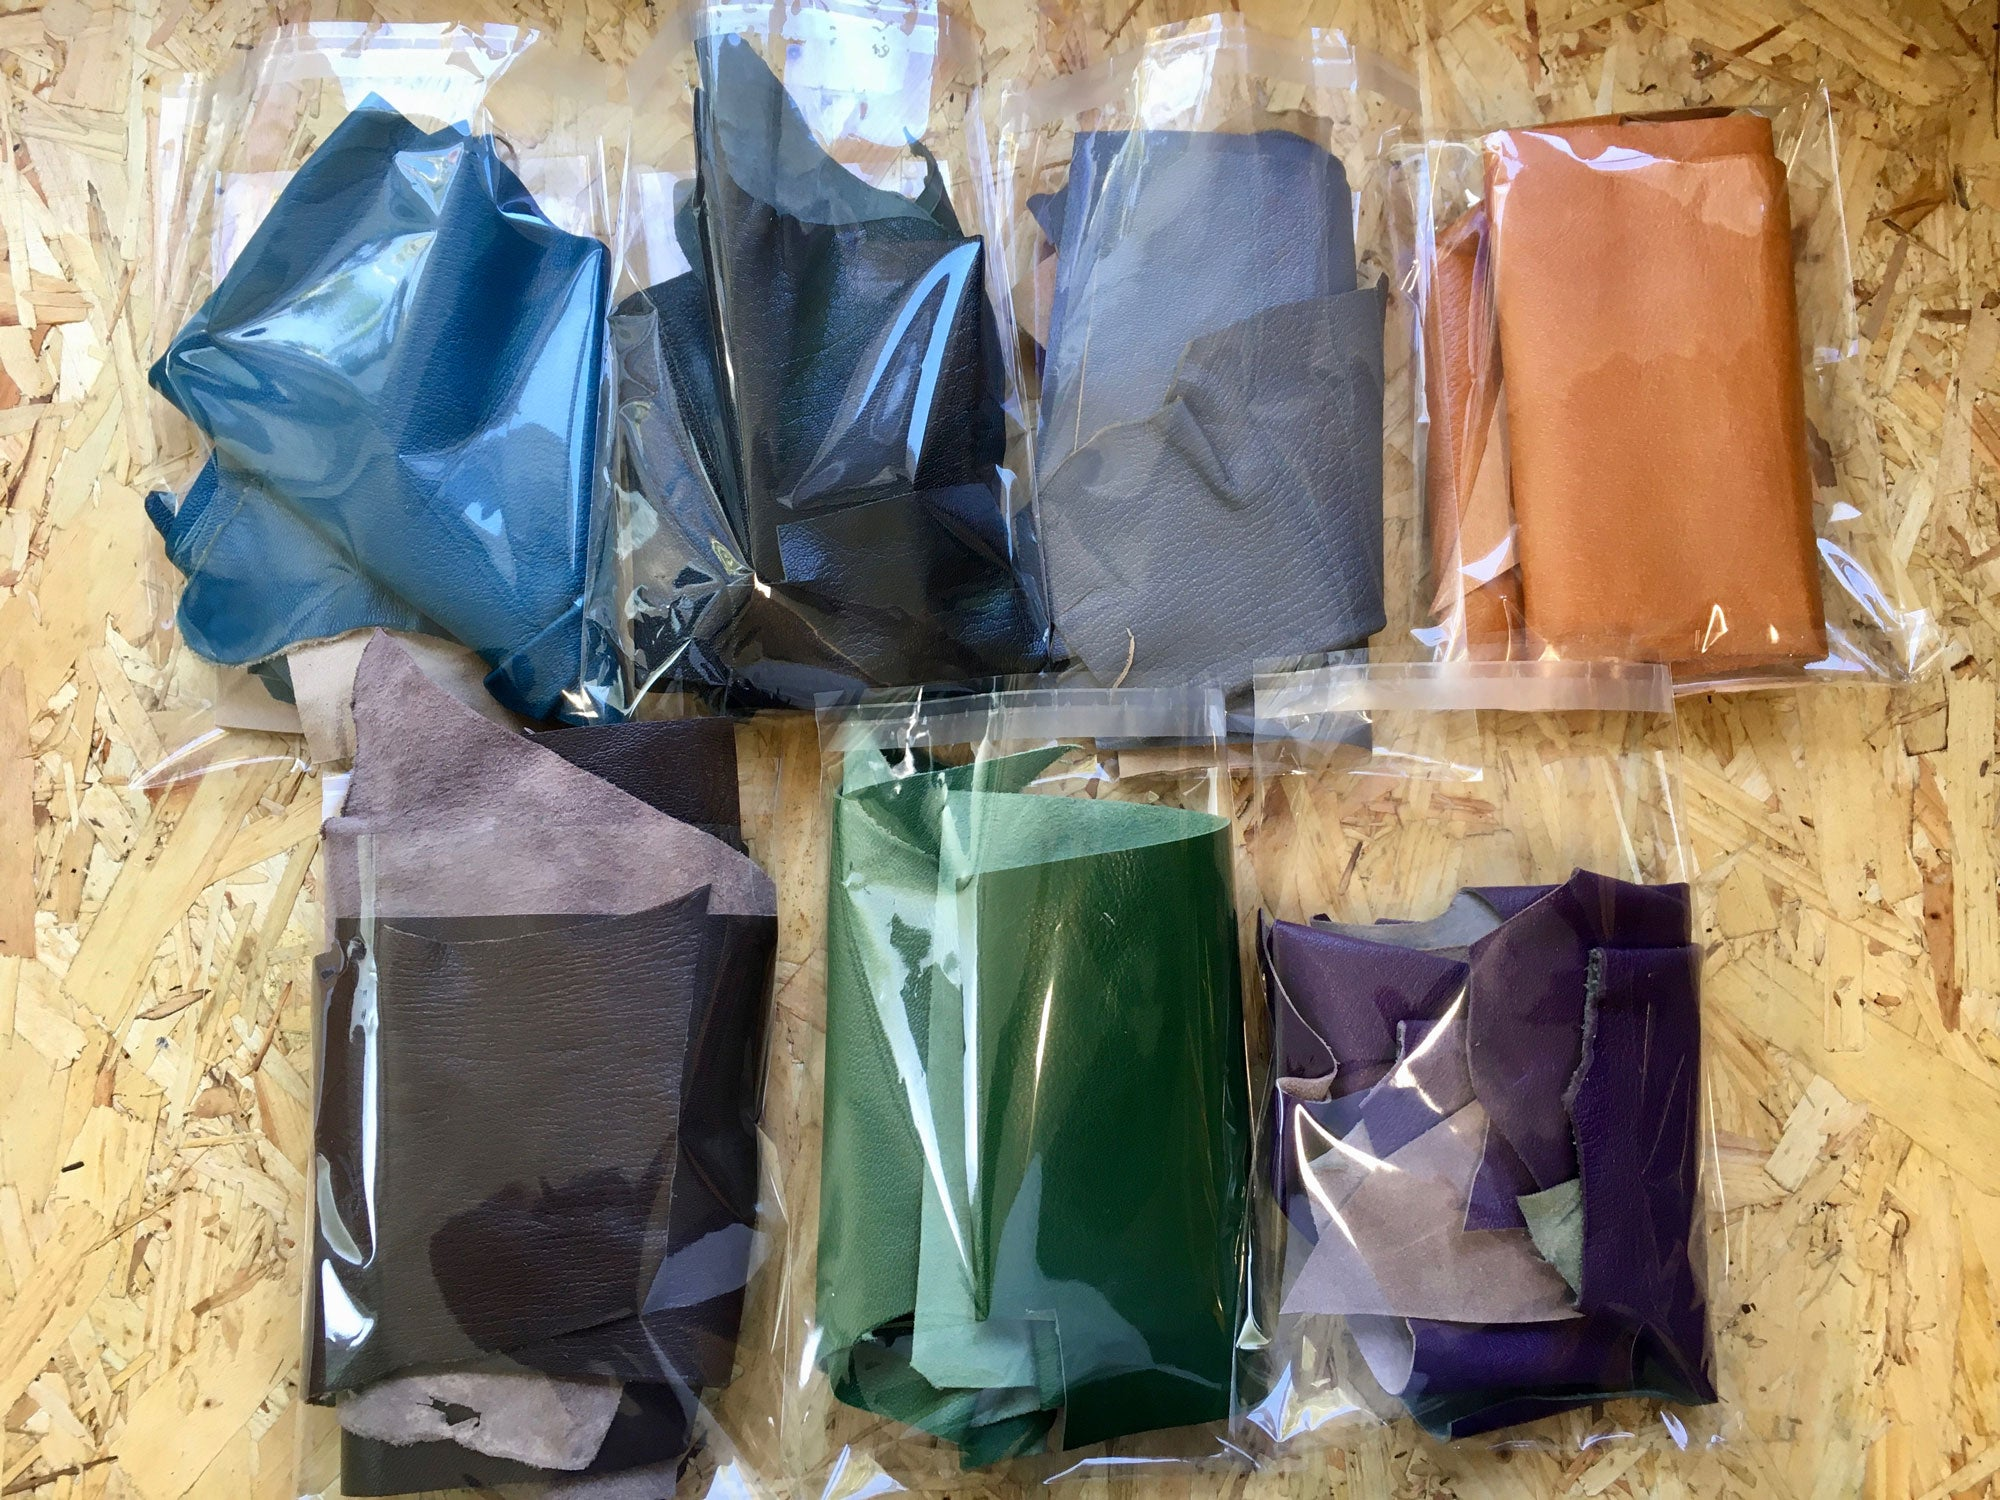 Showing all colours of Scrap Leather Offcuts – Grey Goatskin Leather Pieces